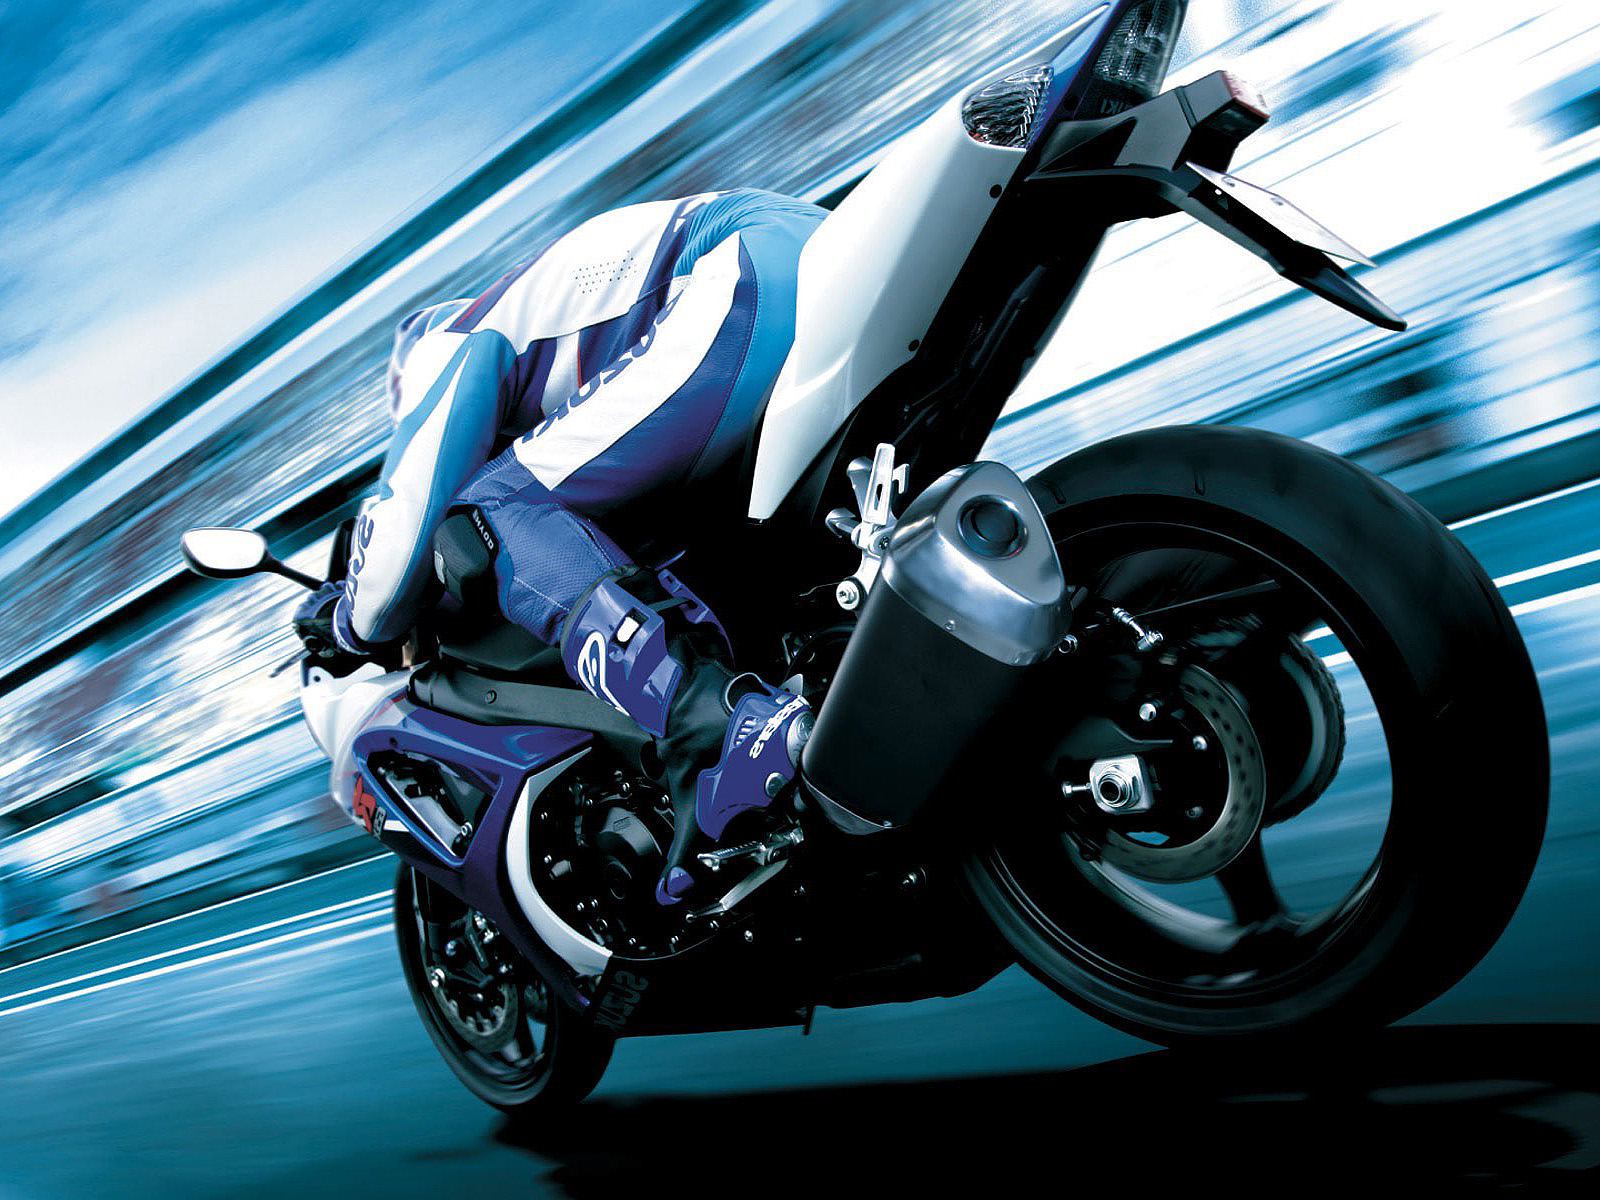 Back Gallery For Motorcycle Screensaver Wallpaper - Beautiful Motorcycle , HD Wallpaper & Backgrounds